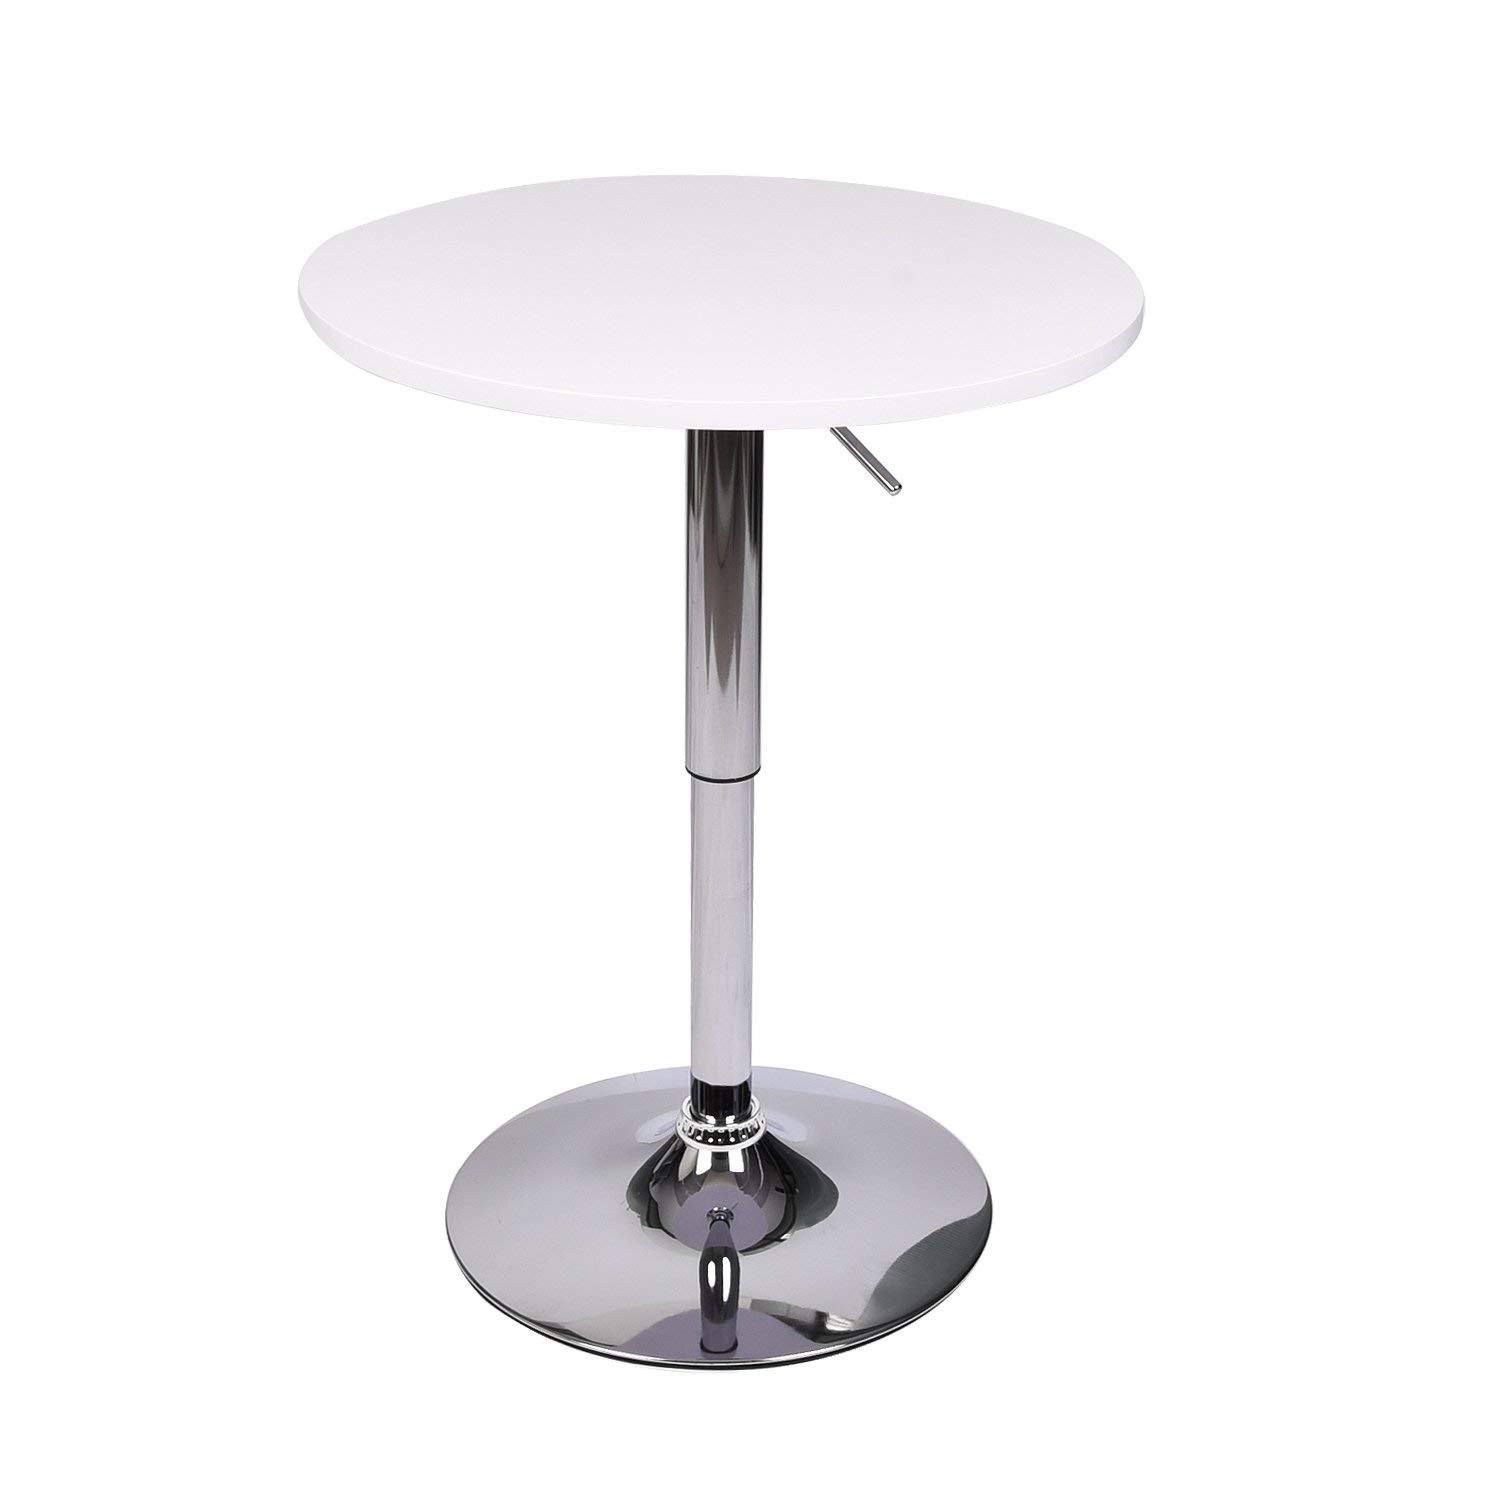 Morden Round Bar Tables - MDF Wood Top Table Chrome Base Pub Table - Gas Lift Height Adjustable - 360 Degree Swivel - Bistro Indoor Dinning Room Outdoor (White)